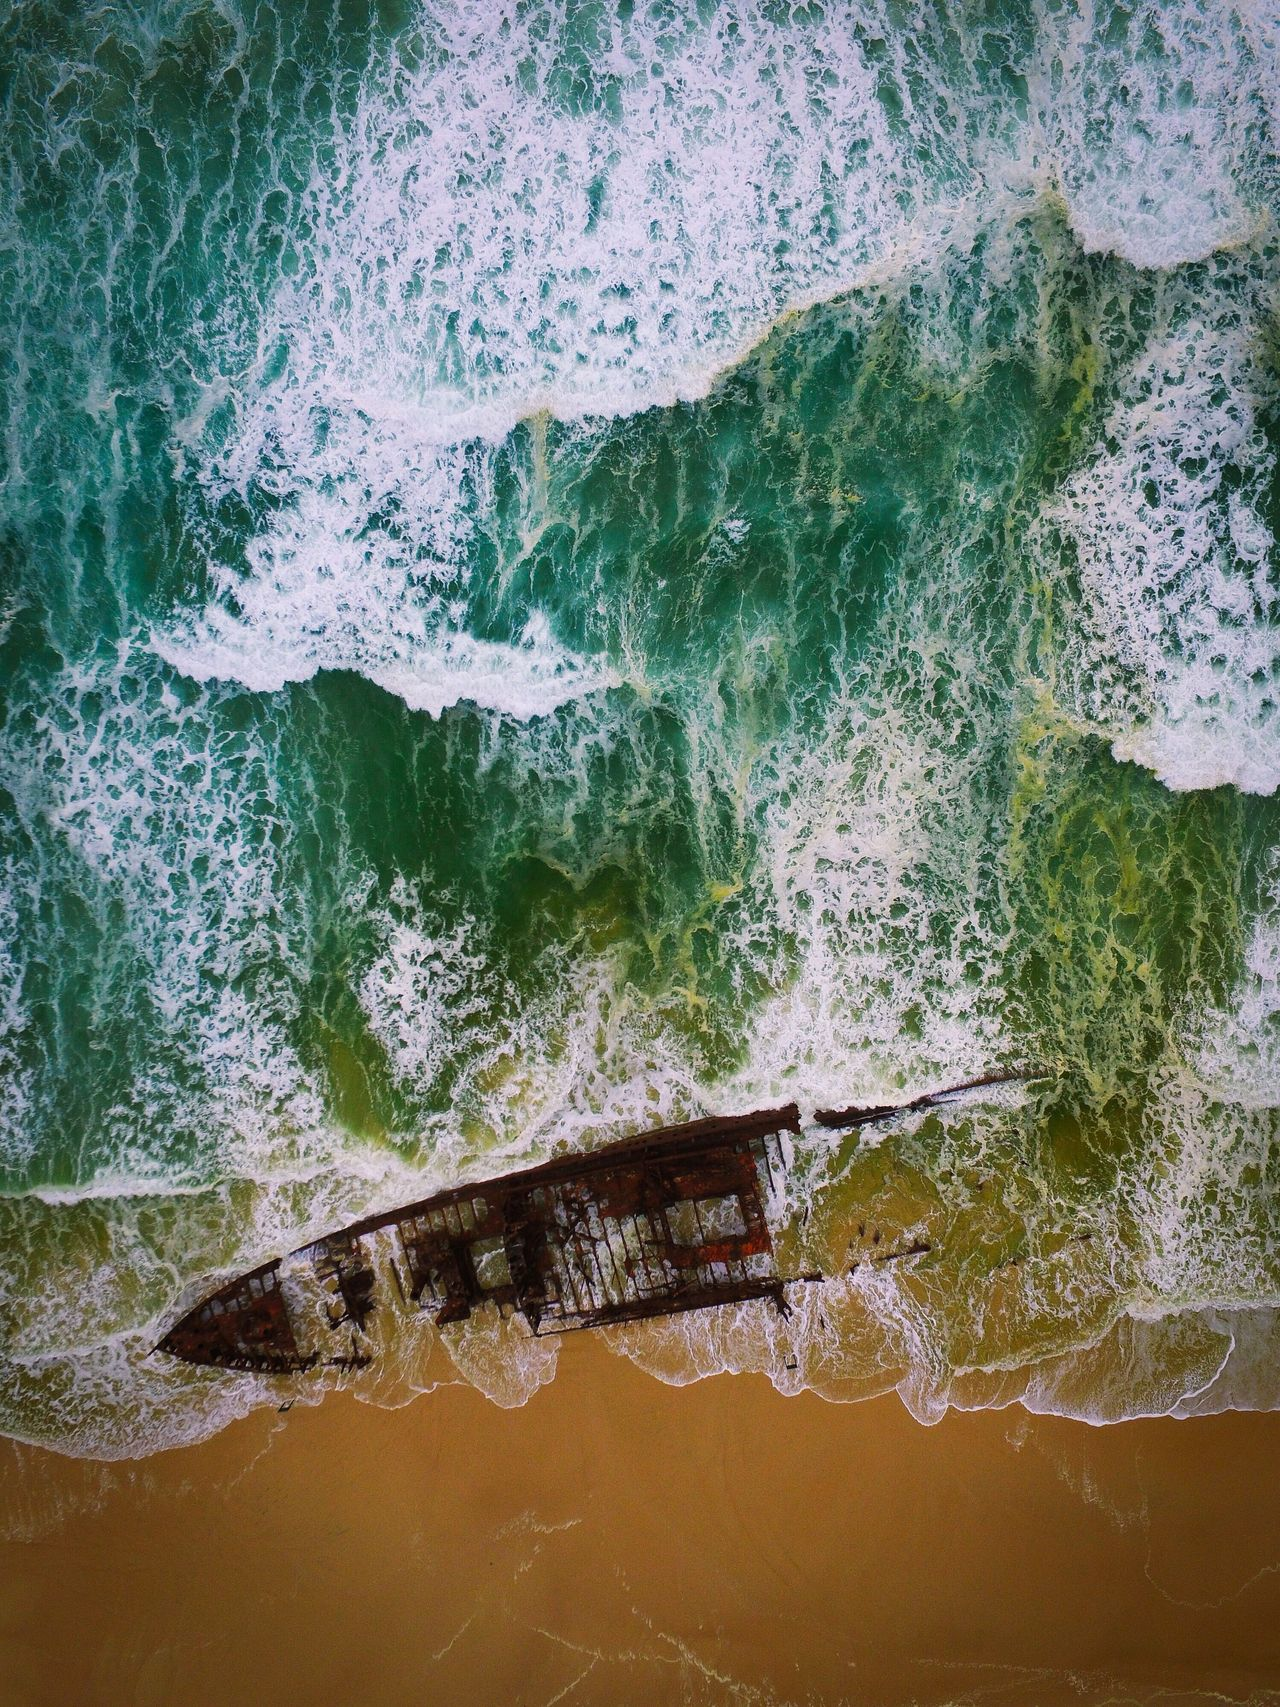 Australia Beautiful From My Point Of View dronephotography drone photography From above droneshot Drone moments travel destinations birds eye view Drones Drone bestoftheday EyeEmBestPics eye4photography EyeEm gallery EyeEm Best Shots Australian Landscape australia & travel